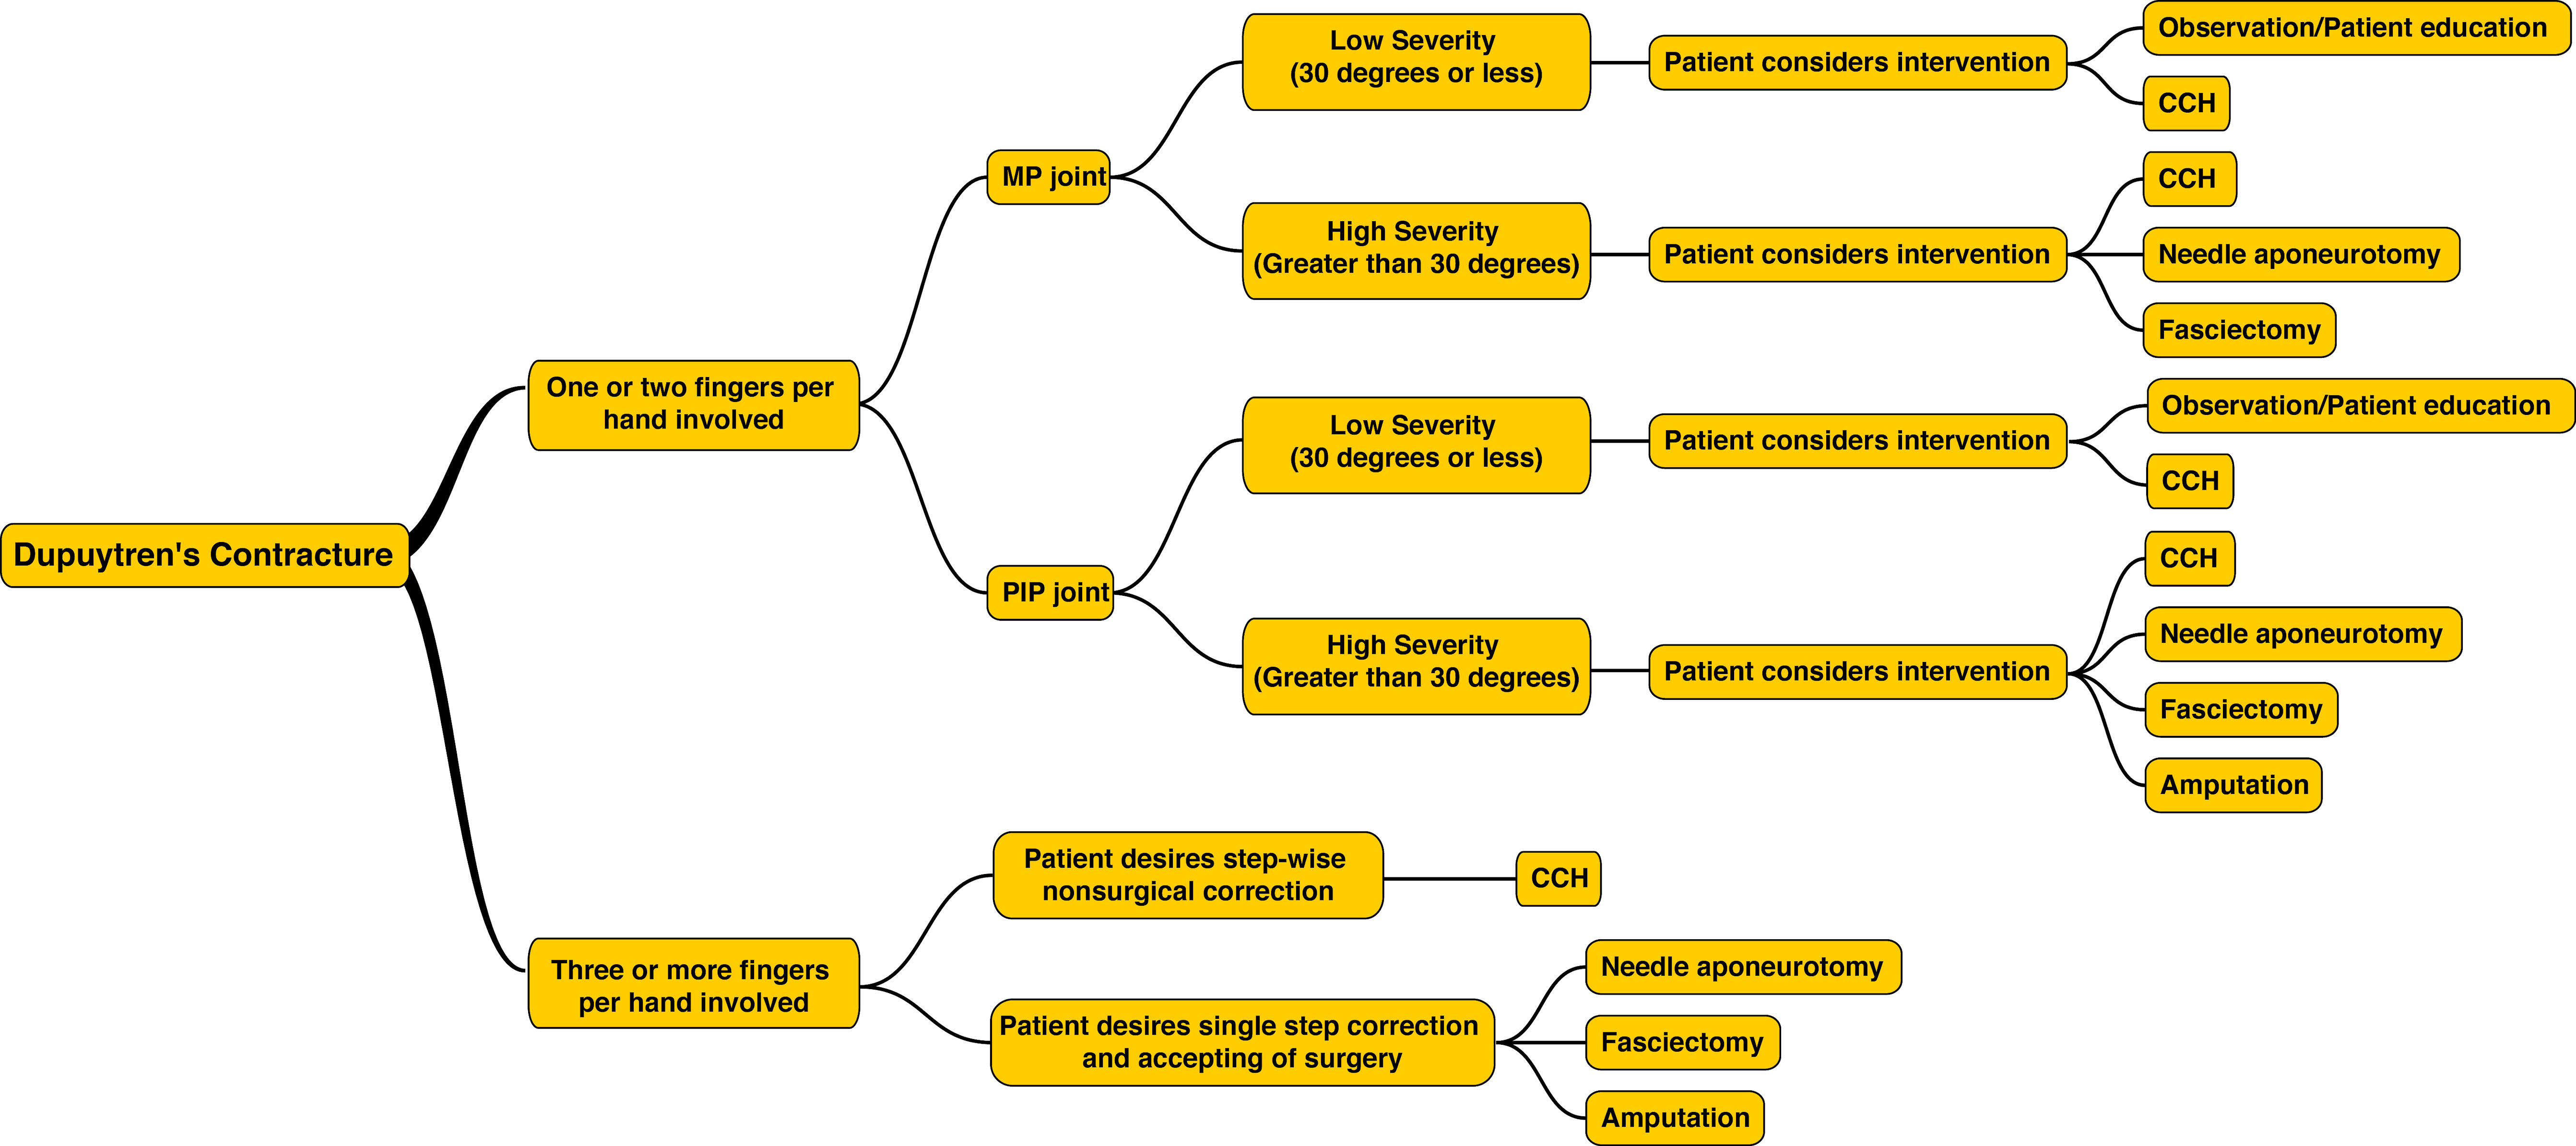 Figure 14: Flowchart for managing patients with Dupuytren's Disease from initial presentation to treatment